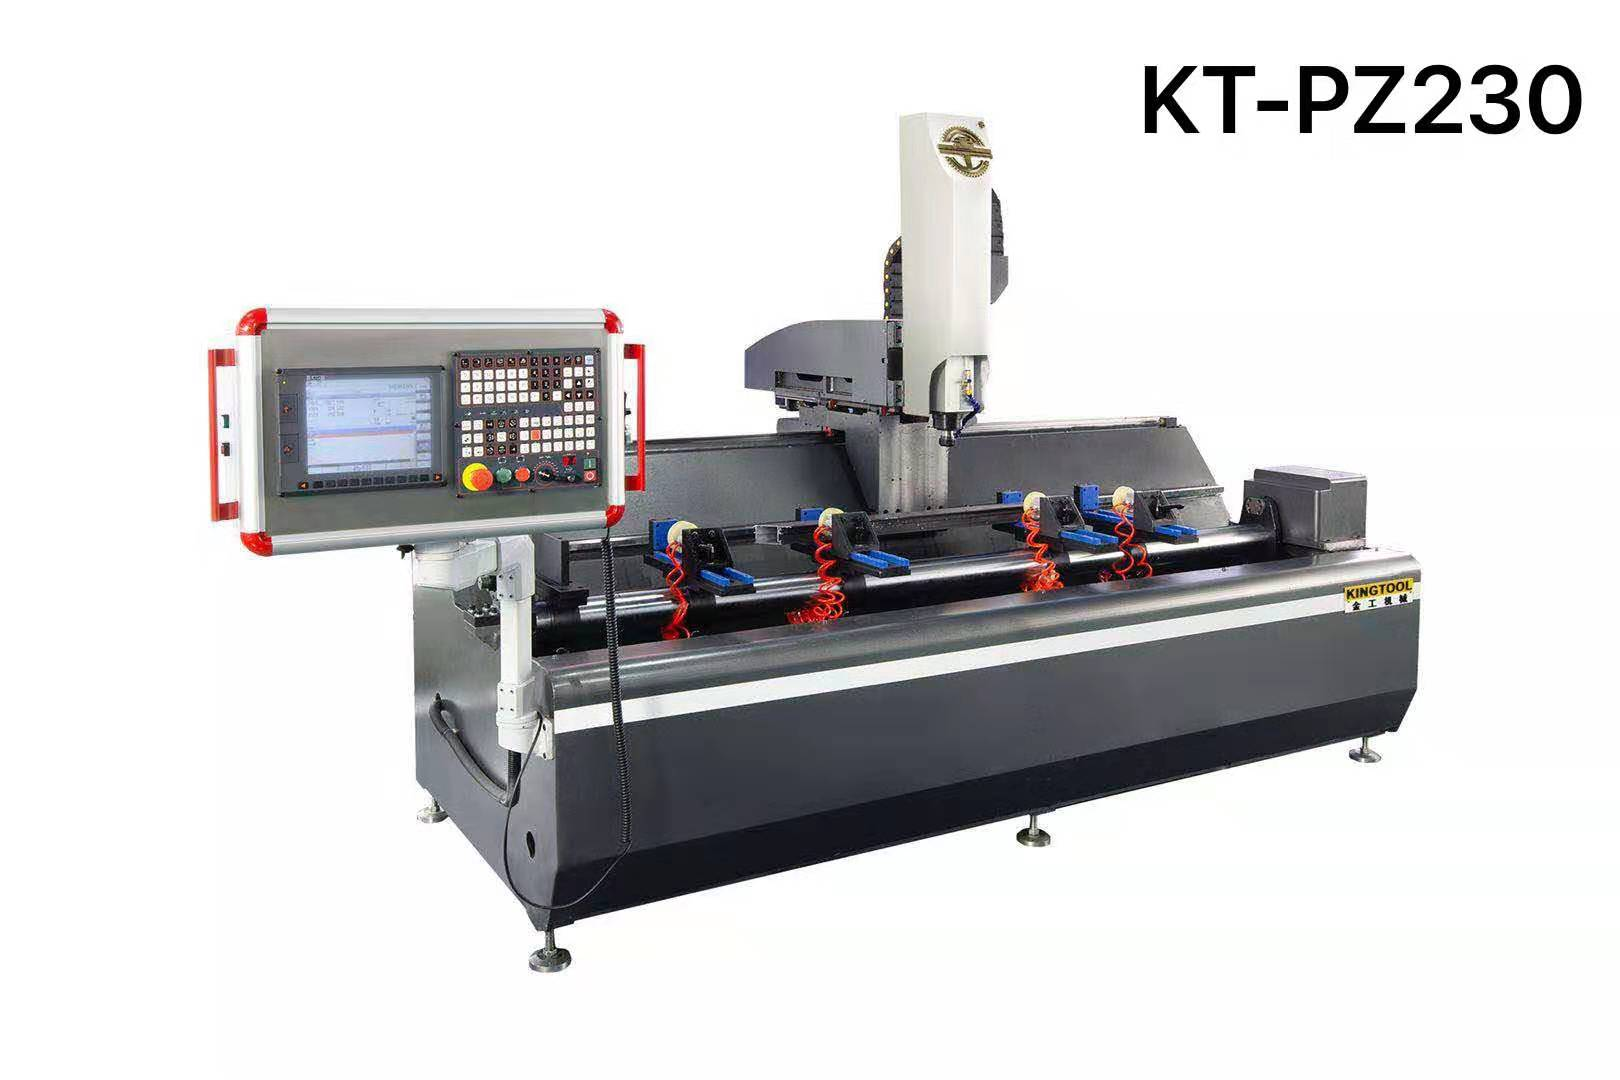 kingtool aluminium machinery cutting 5 axis cnc router producer for engraving-1